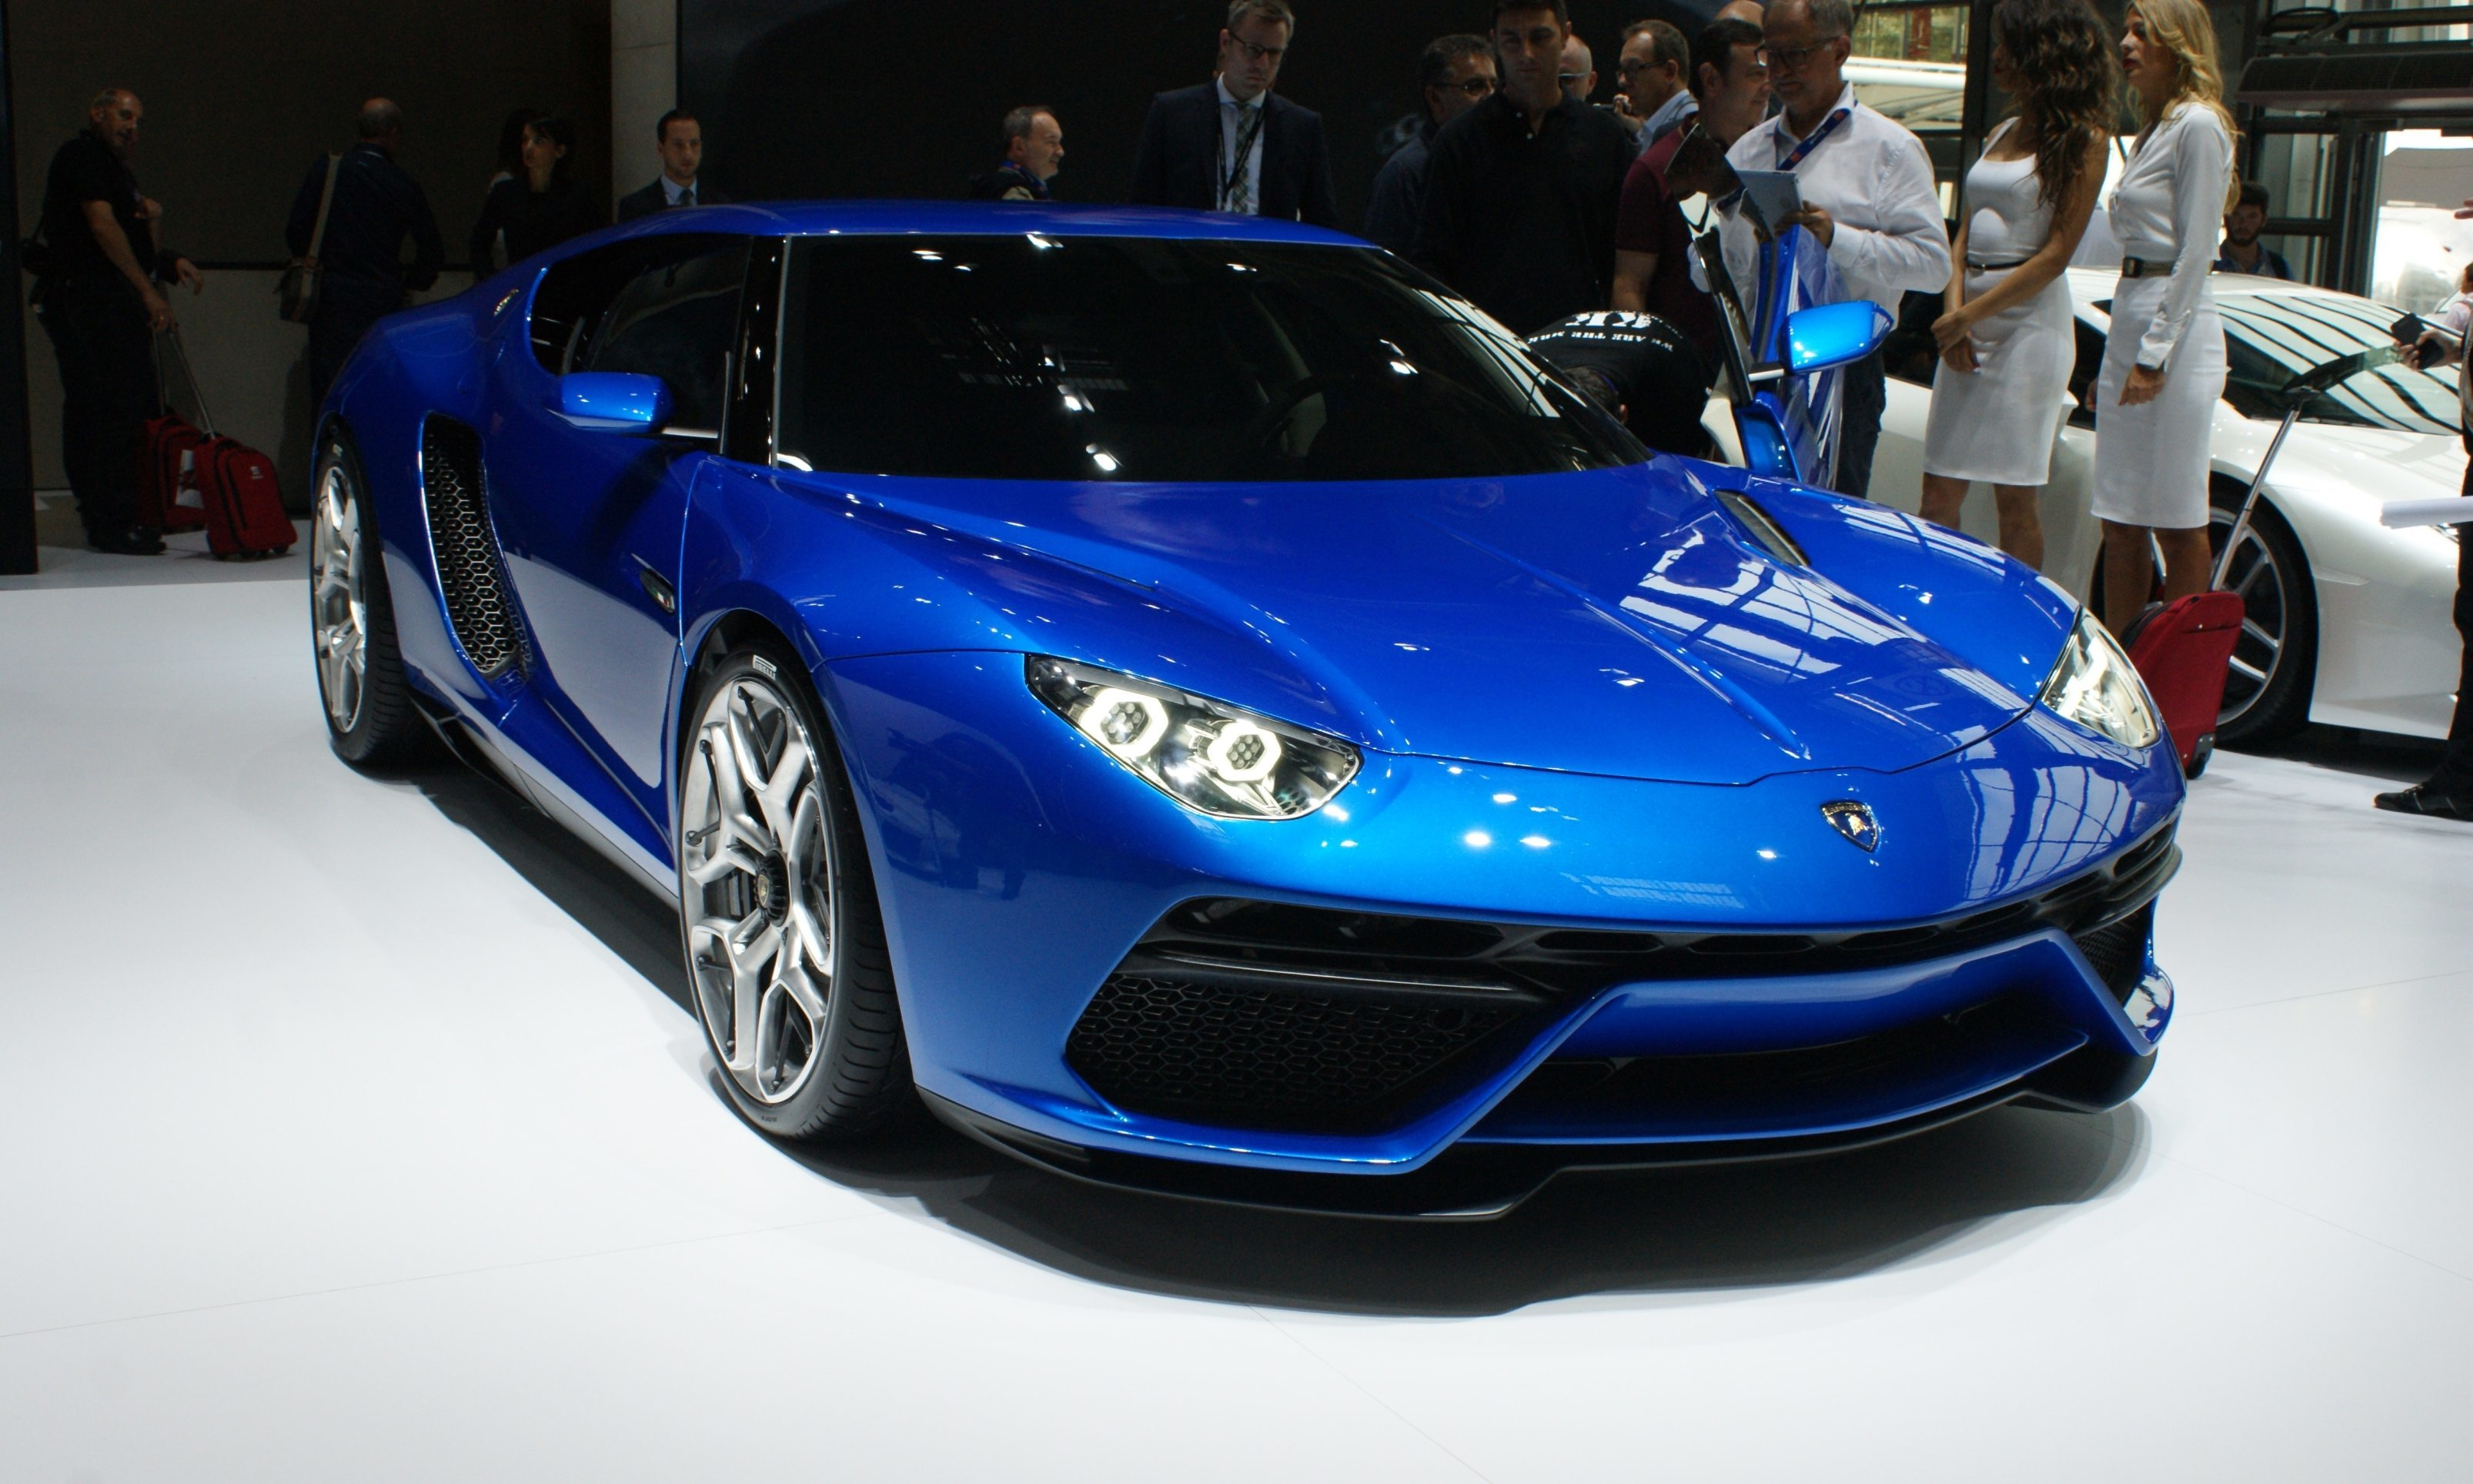 3 0s Lamborghini Lpi 910 4 Asterion Is Mid Engine V10 Phev Hyper